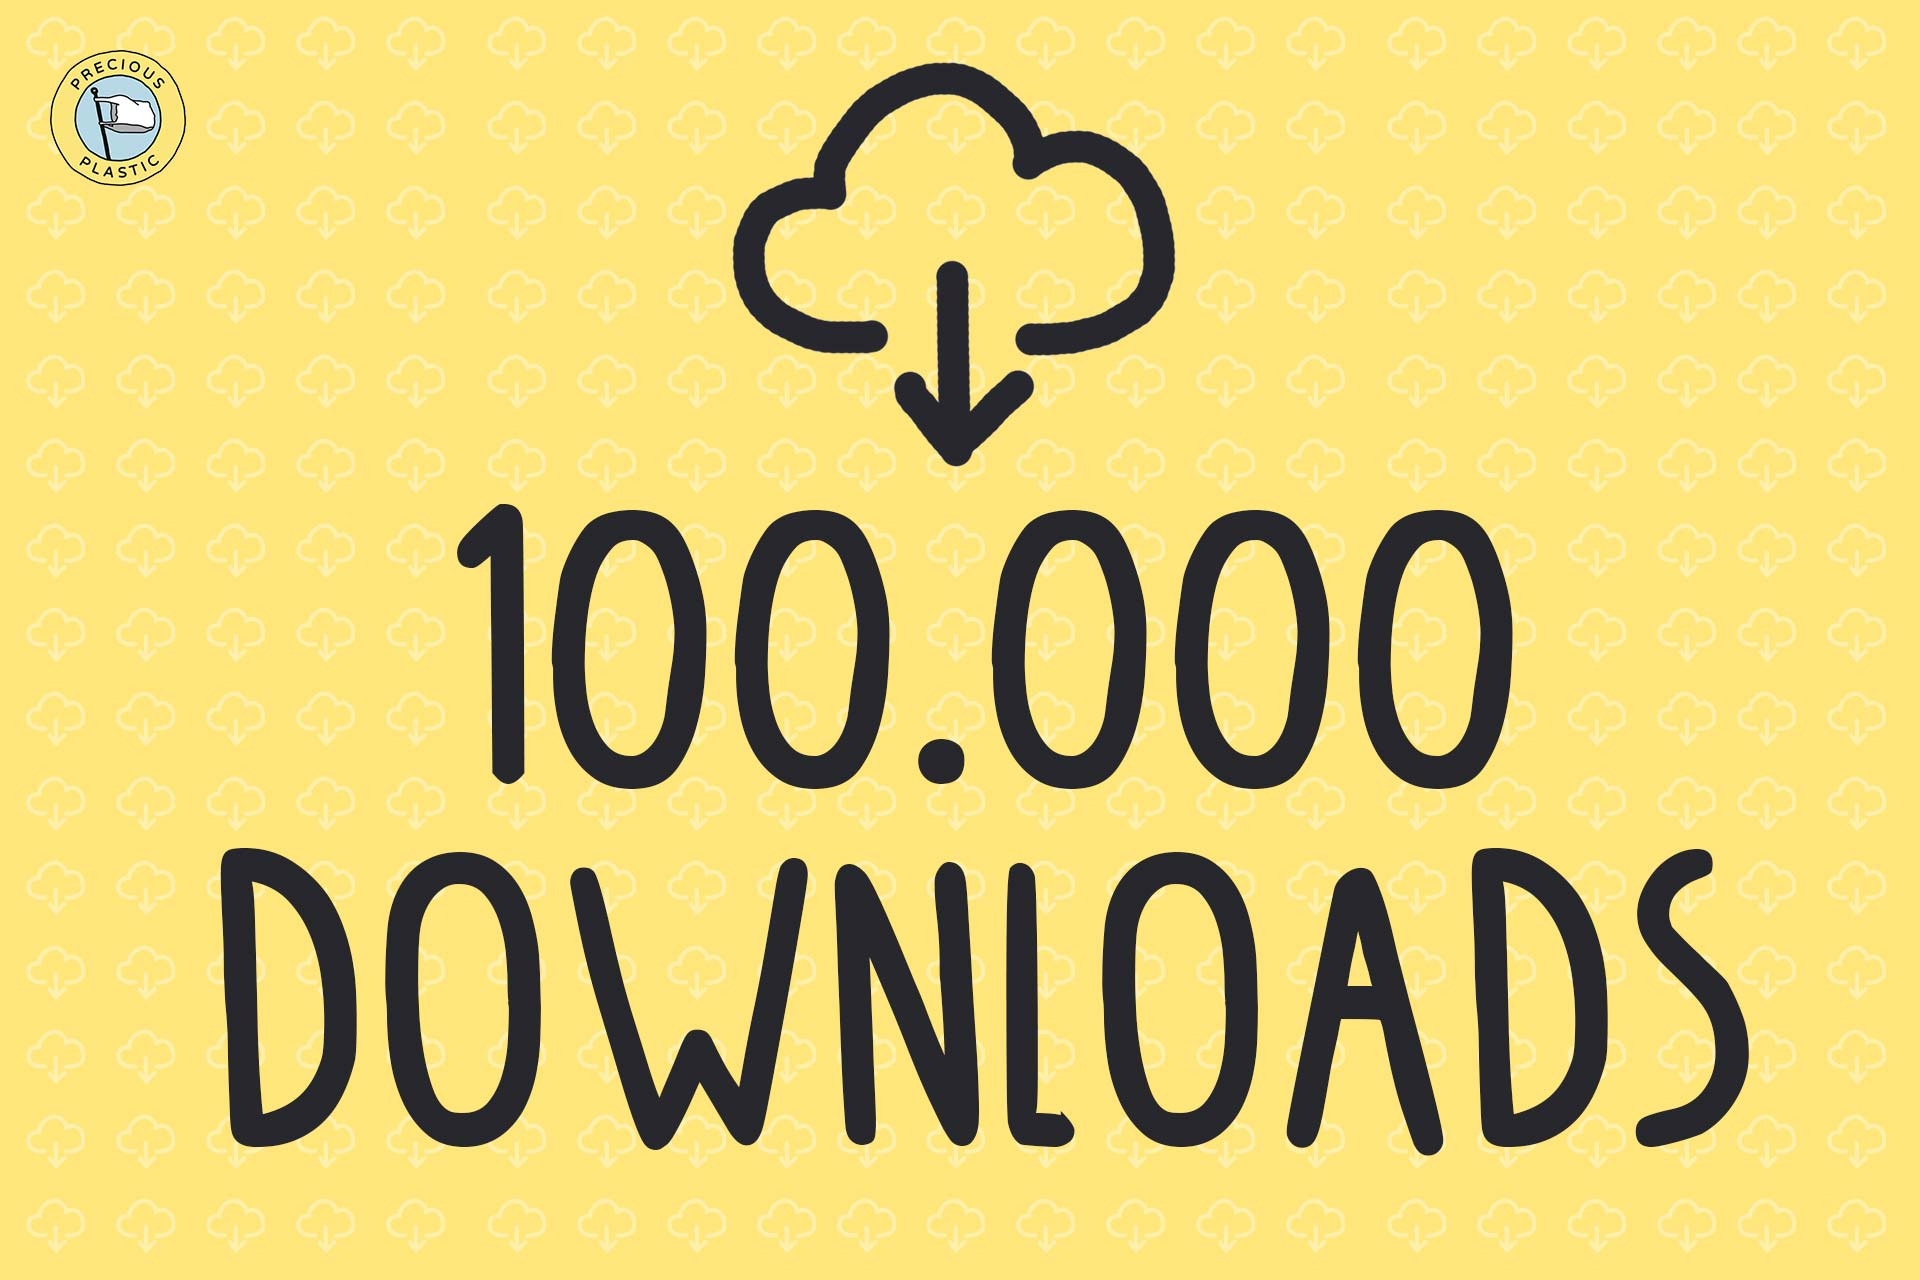 yellow illustration with download icon and the number 100.000